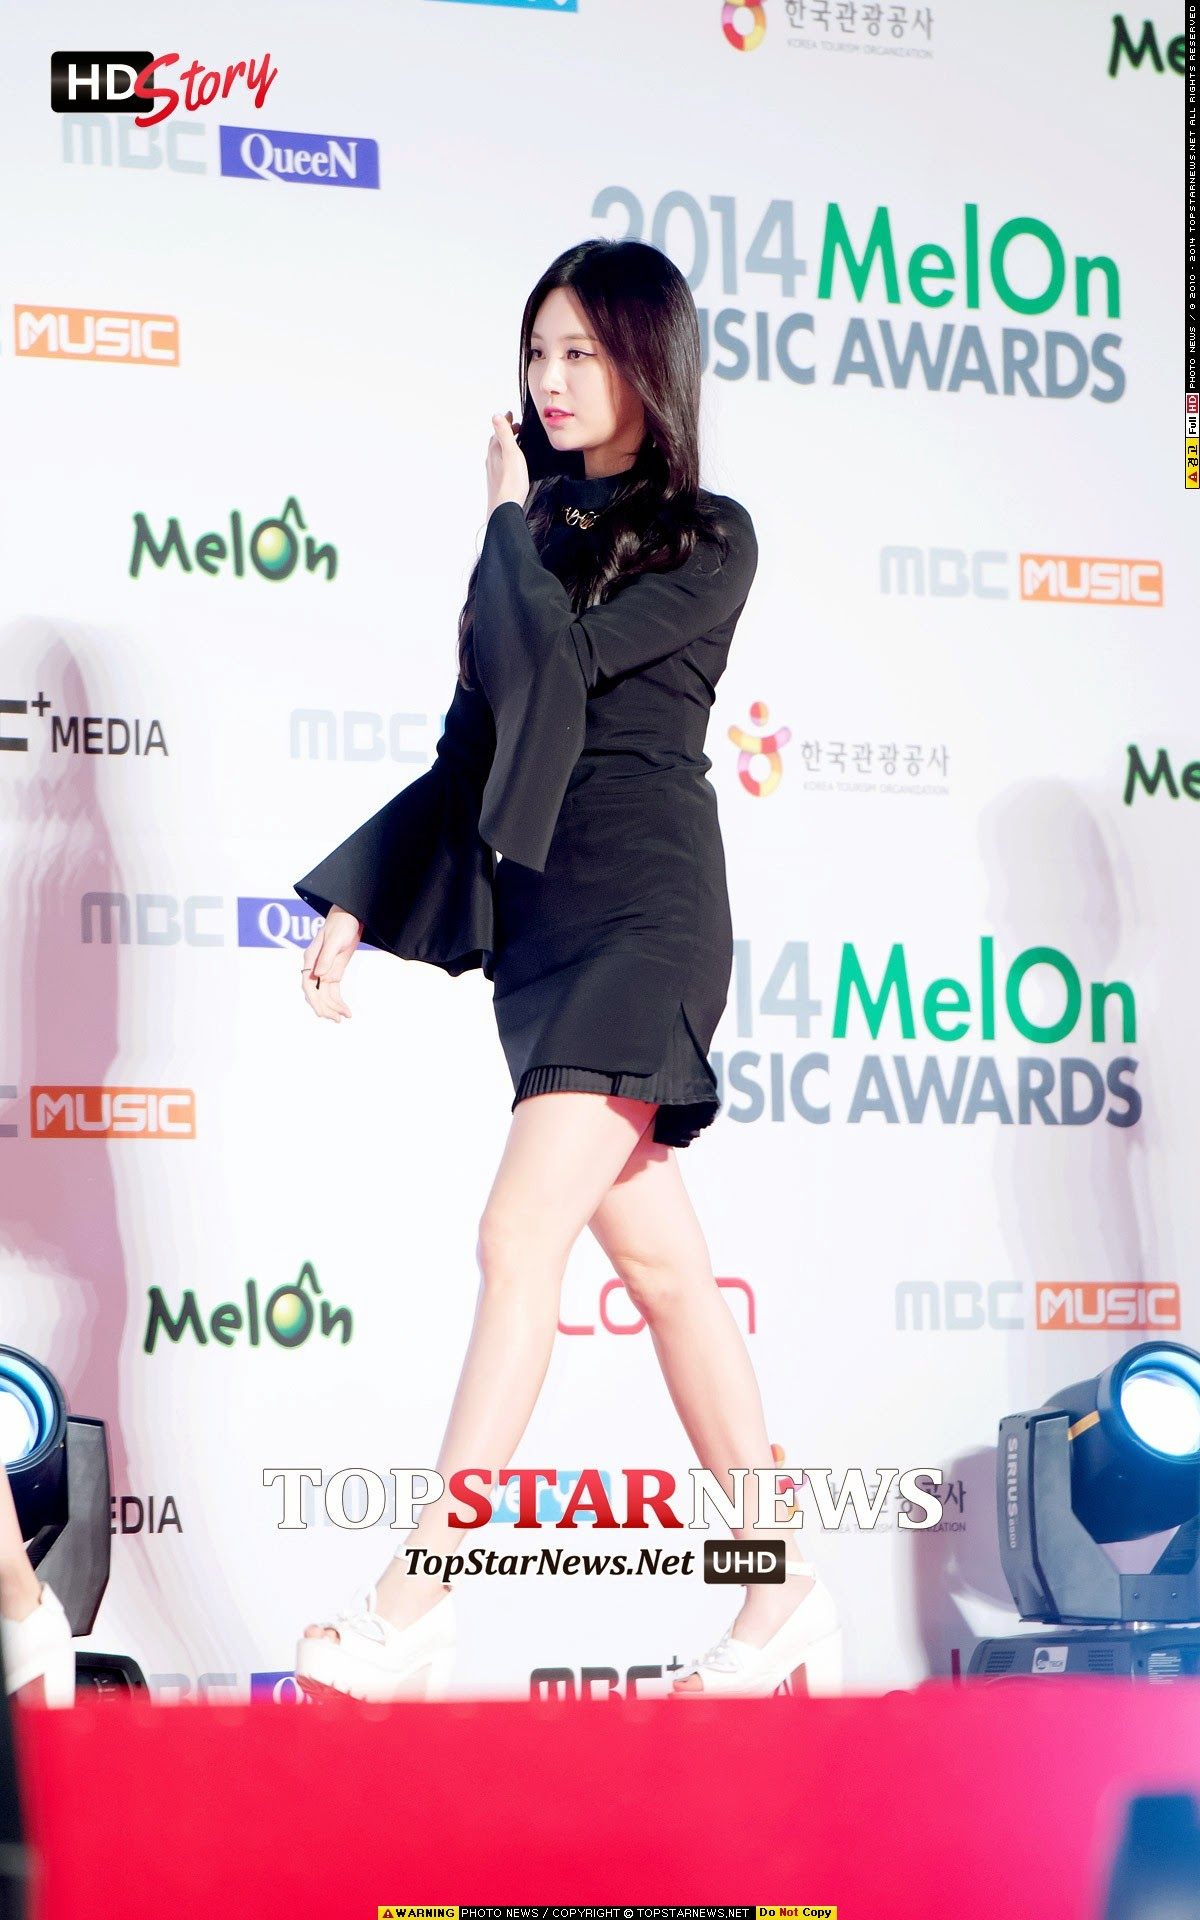 2014 Melon Music Awards Yura